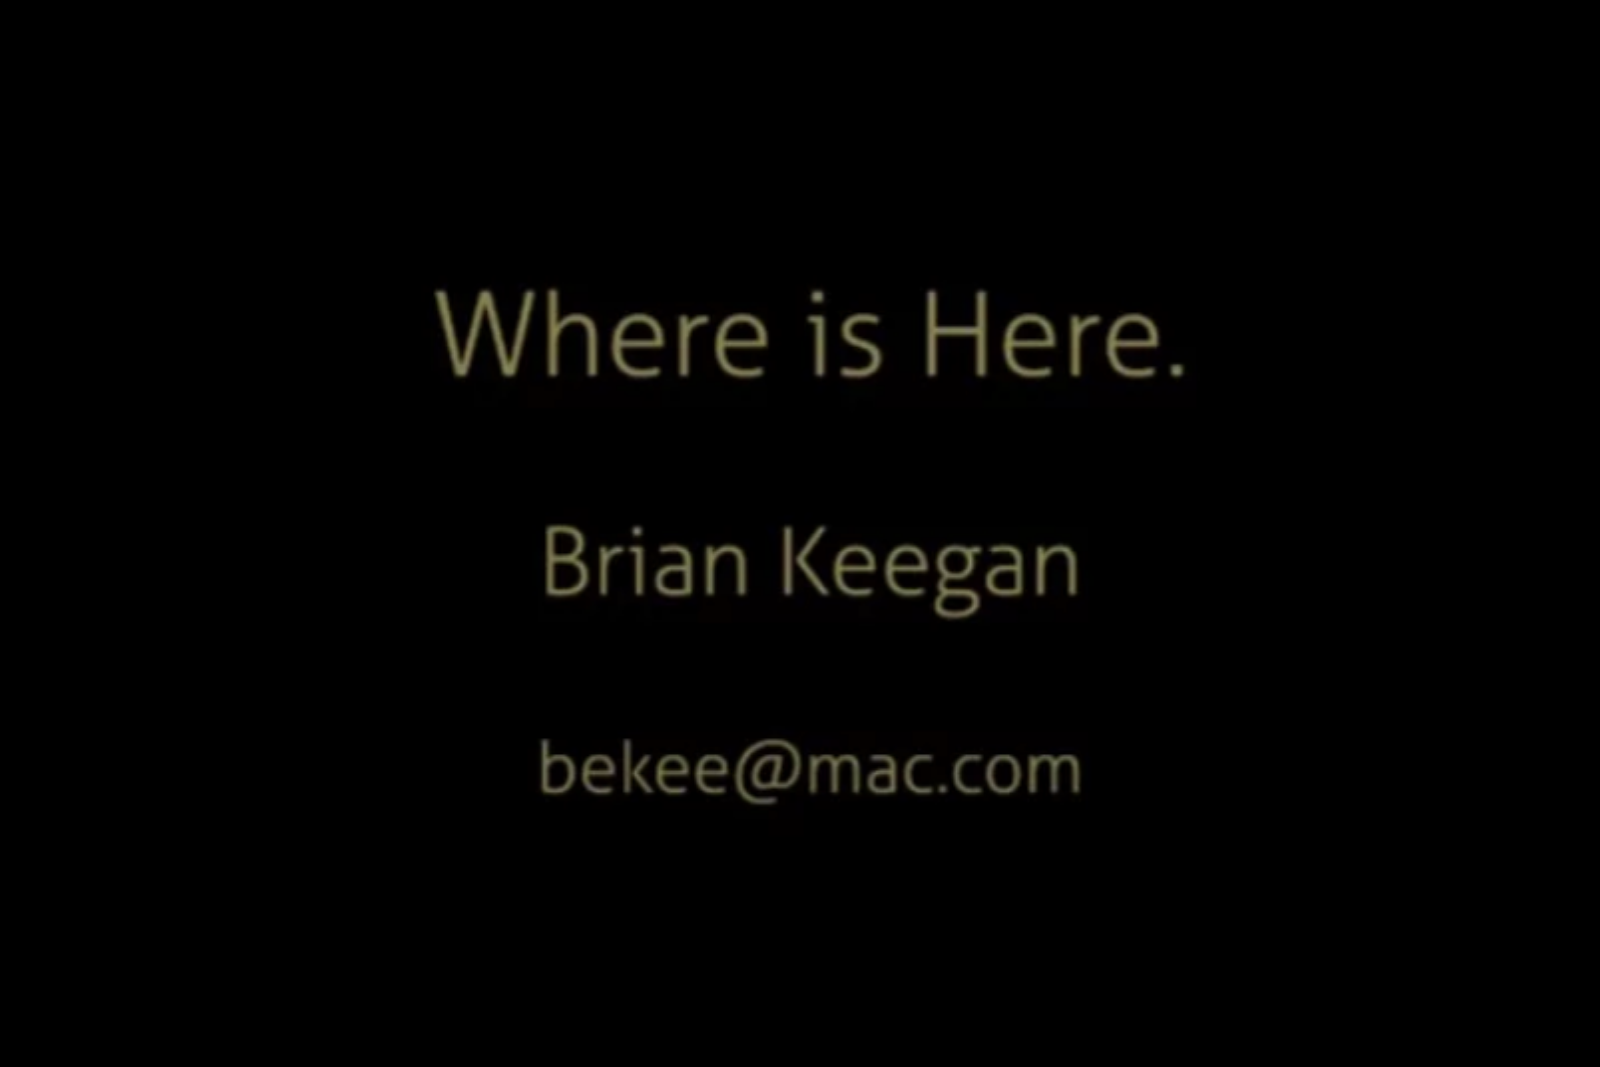 WHERE IS HERE by Brian Keegan